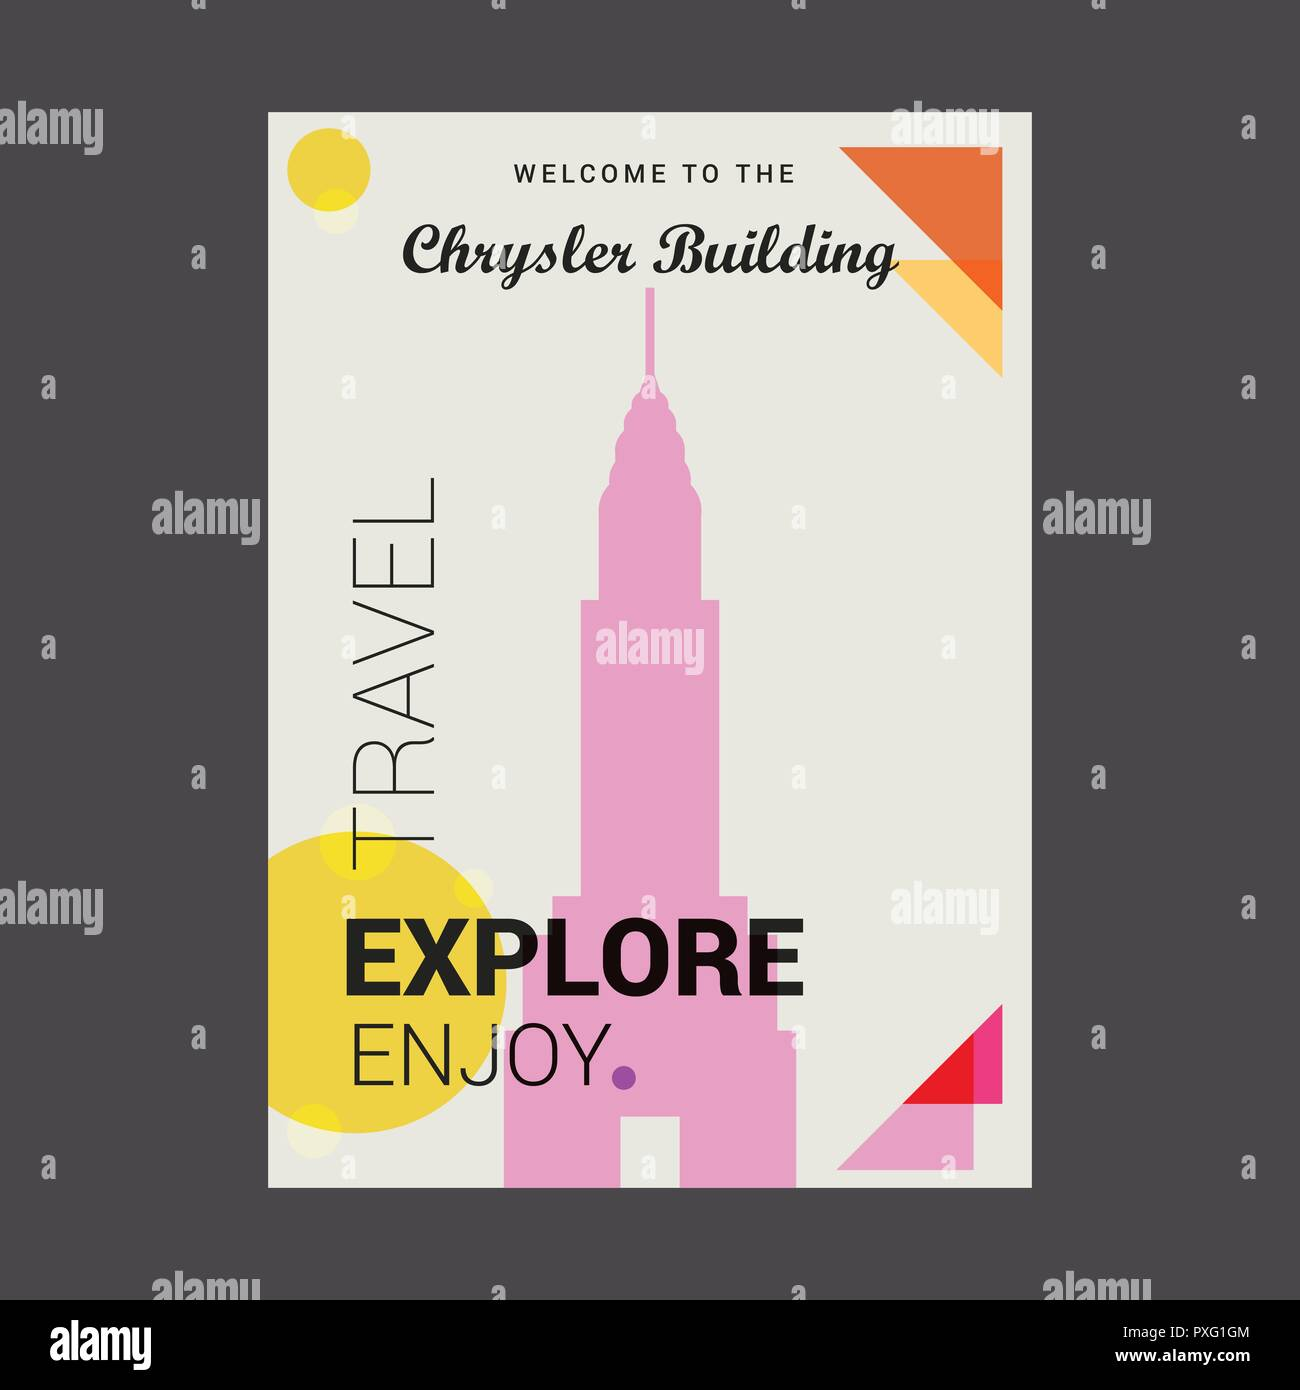 Welcome to The Chrysler Building Manhattan, New York Explore, Travel Enjoy Poster Template - Stock Vector